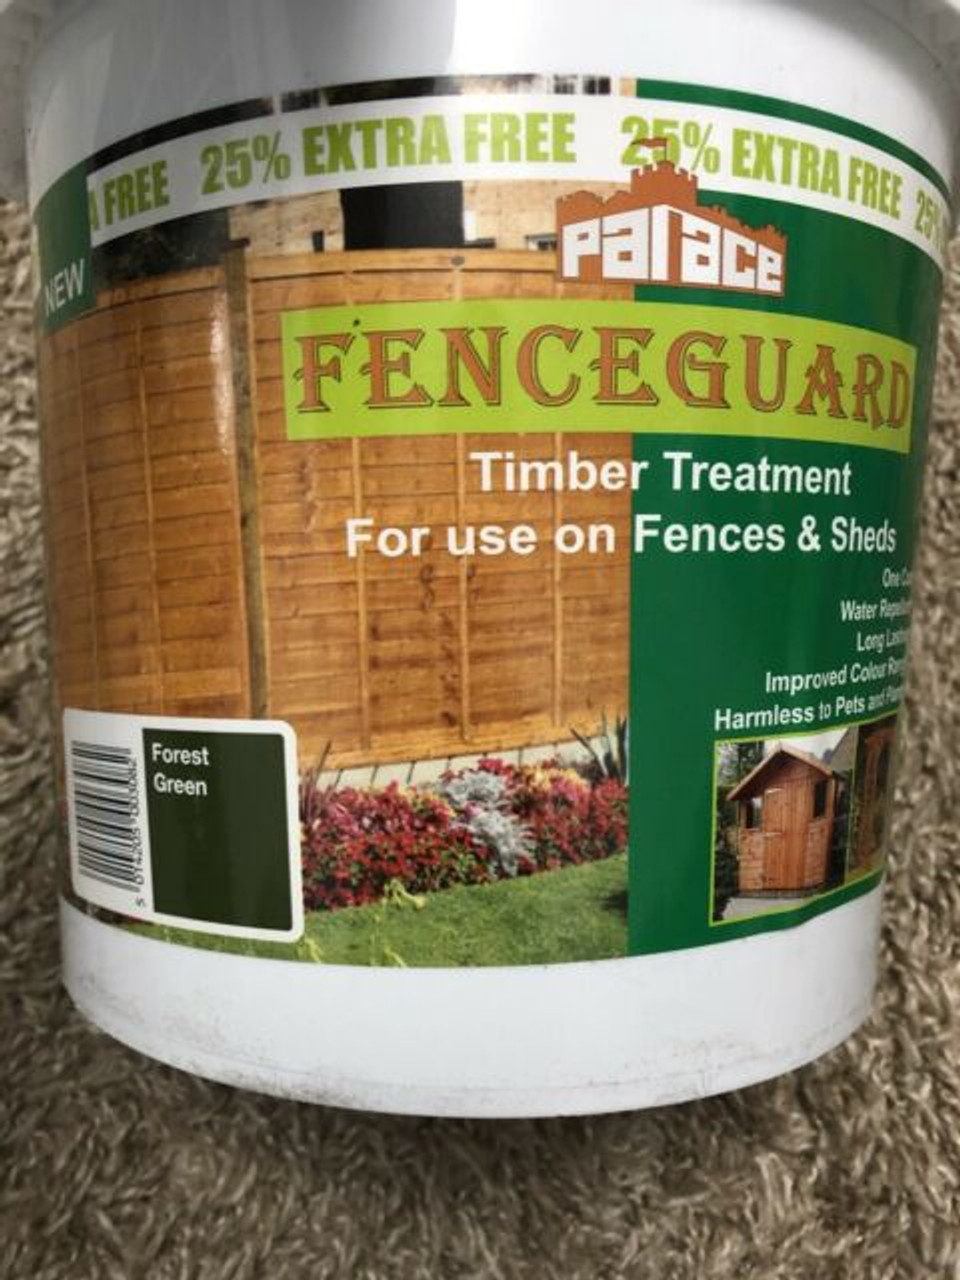 Palace Fenceguard brush-on timber treatment - Forest Green - LOCAL DELIVERY ONLY